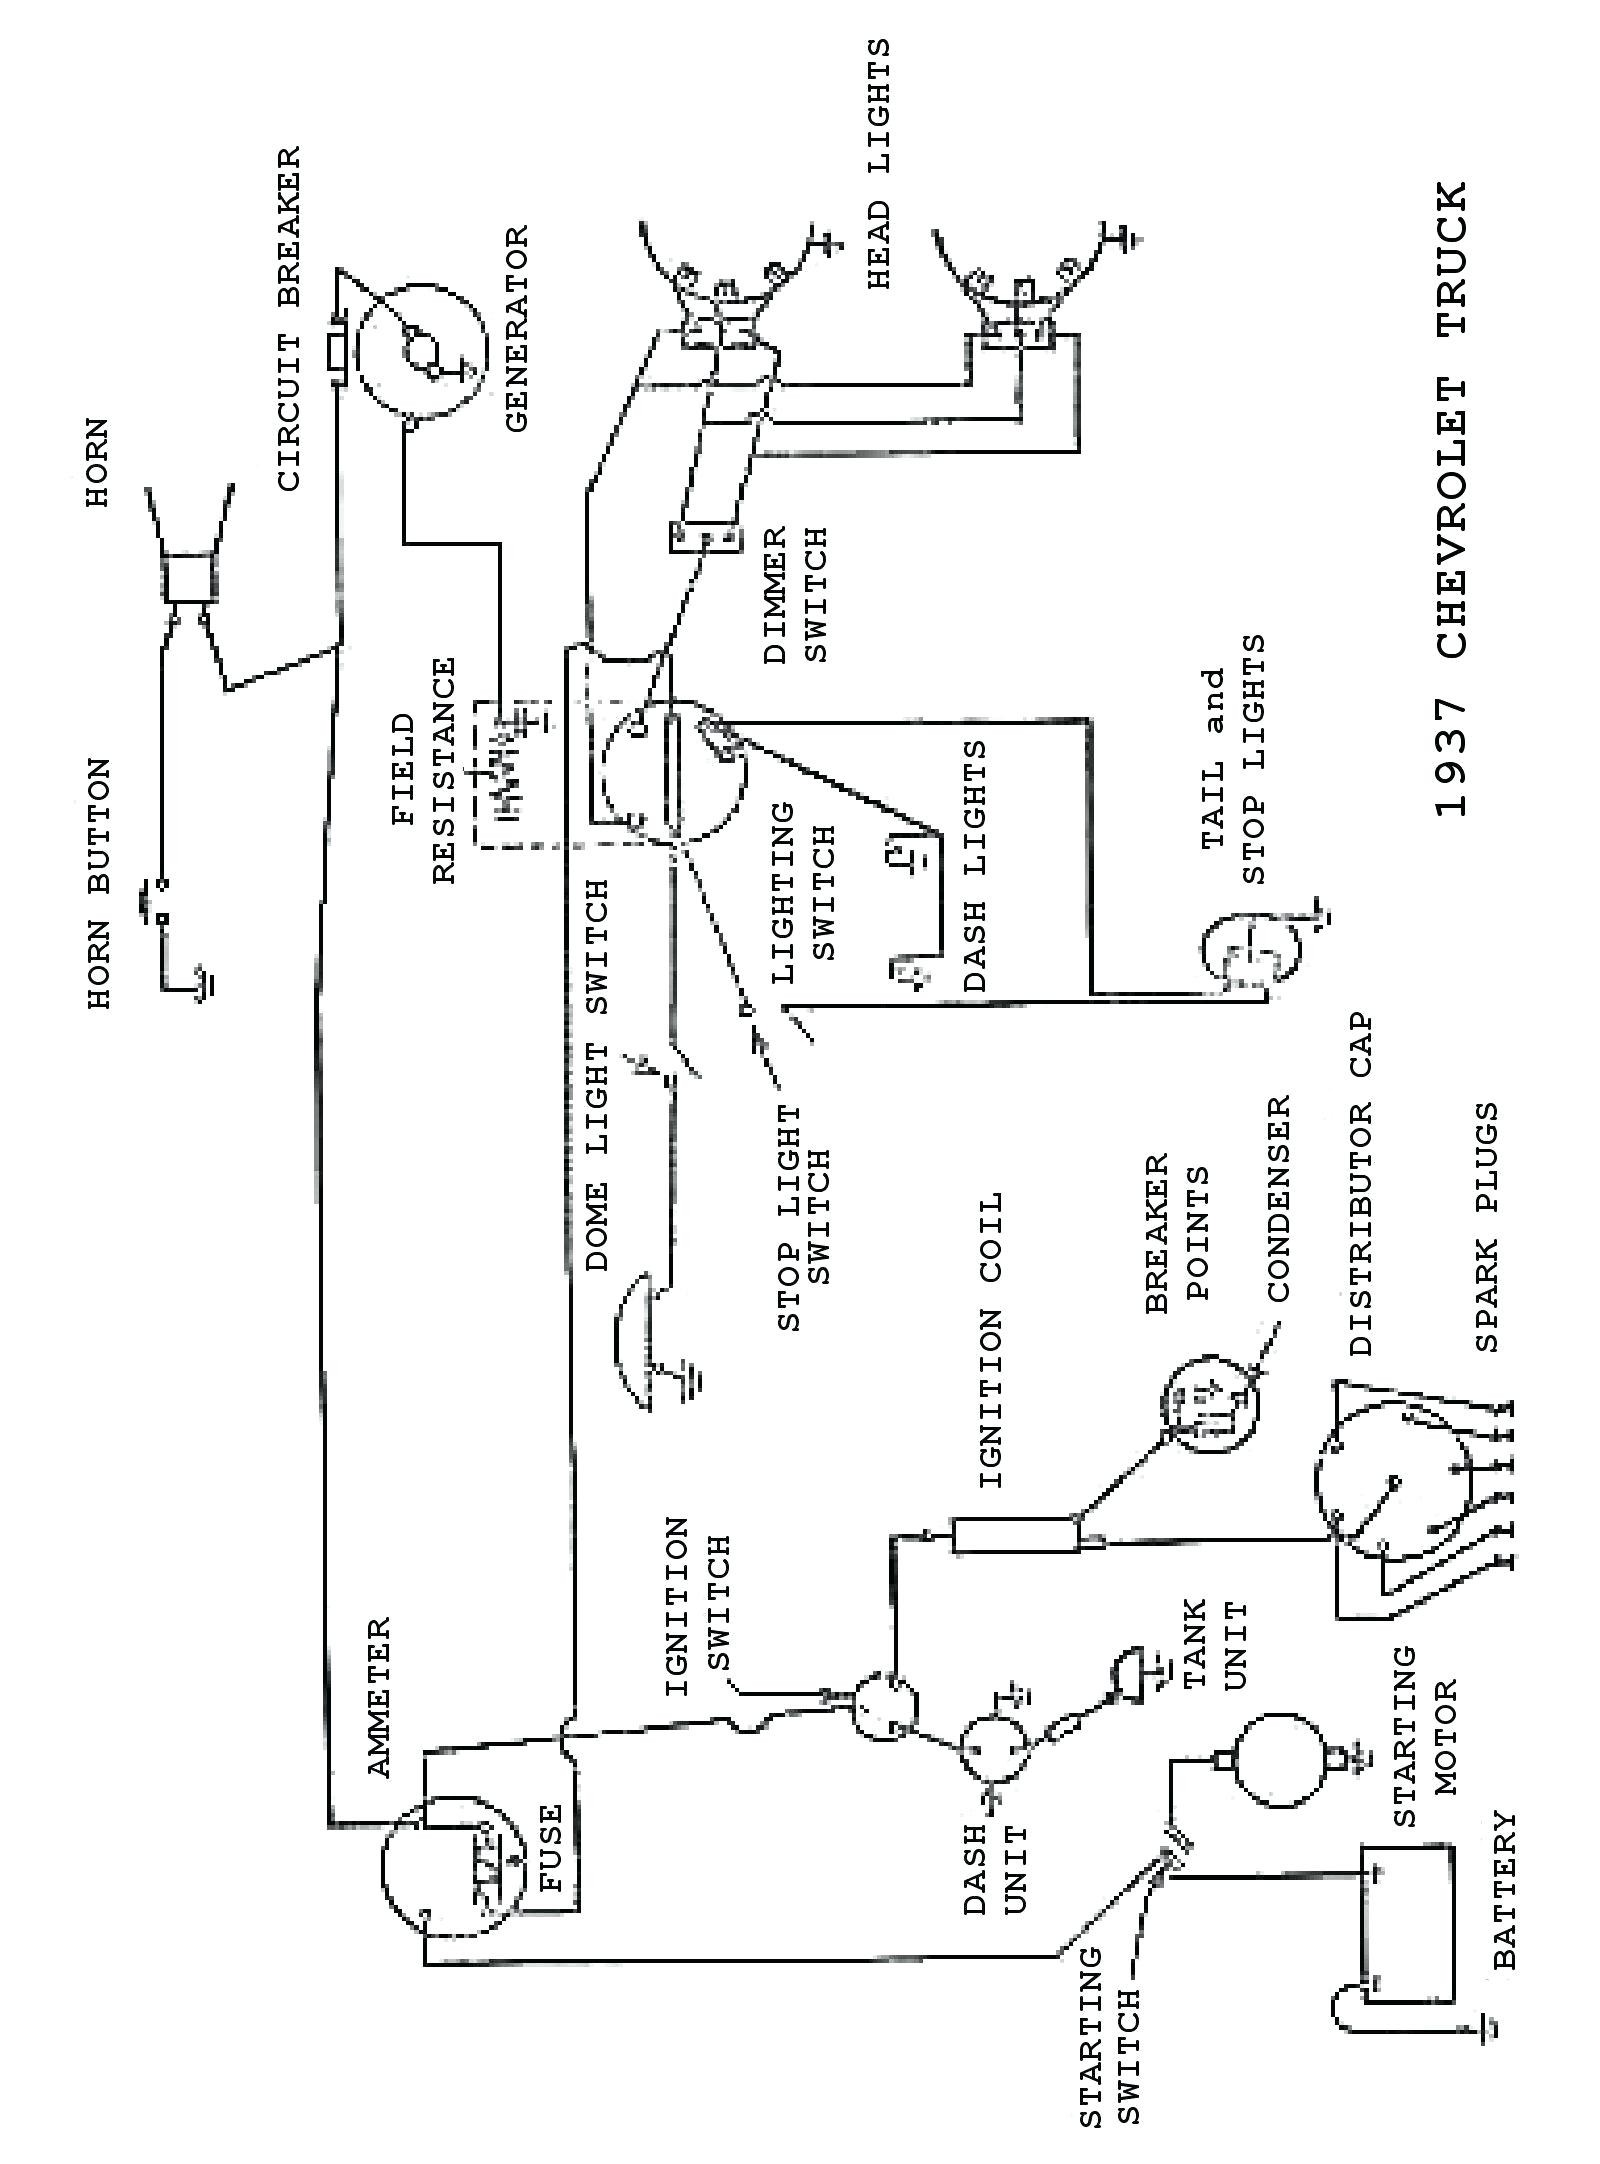 small resolution of wiring diagram 24 volt 4010 electronic schematics collections john deere 4020 parts diagram 4020 24 volt wiring diagram